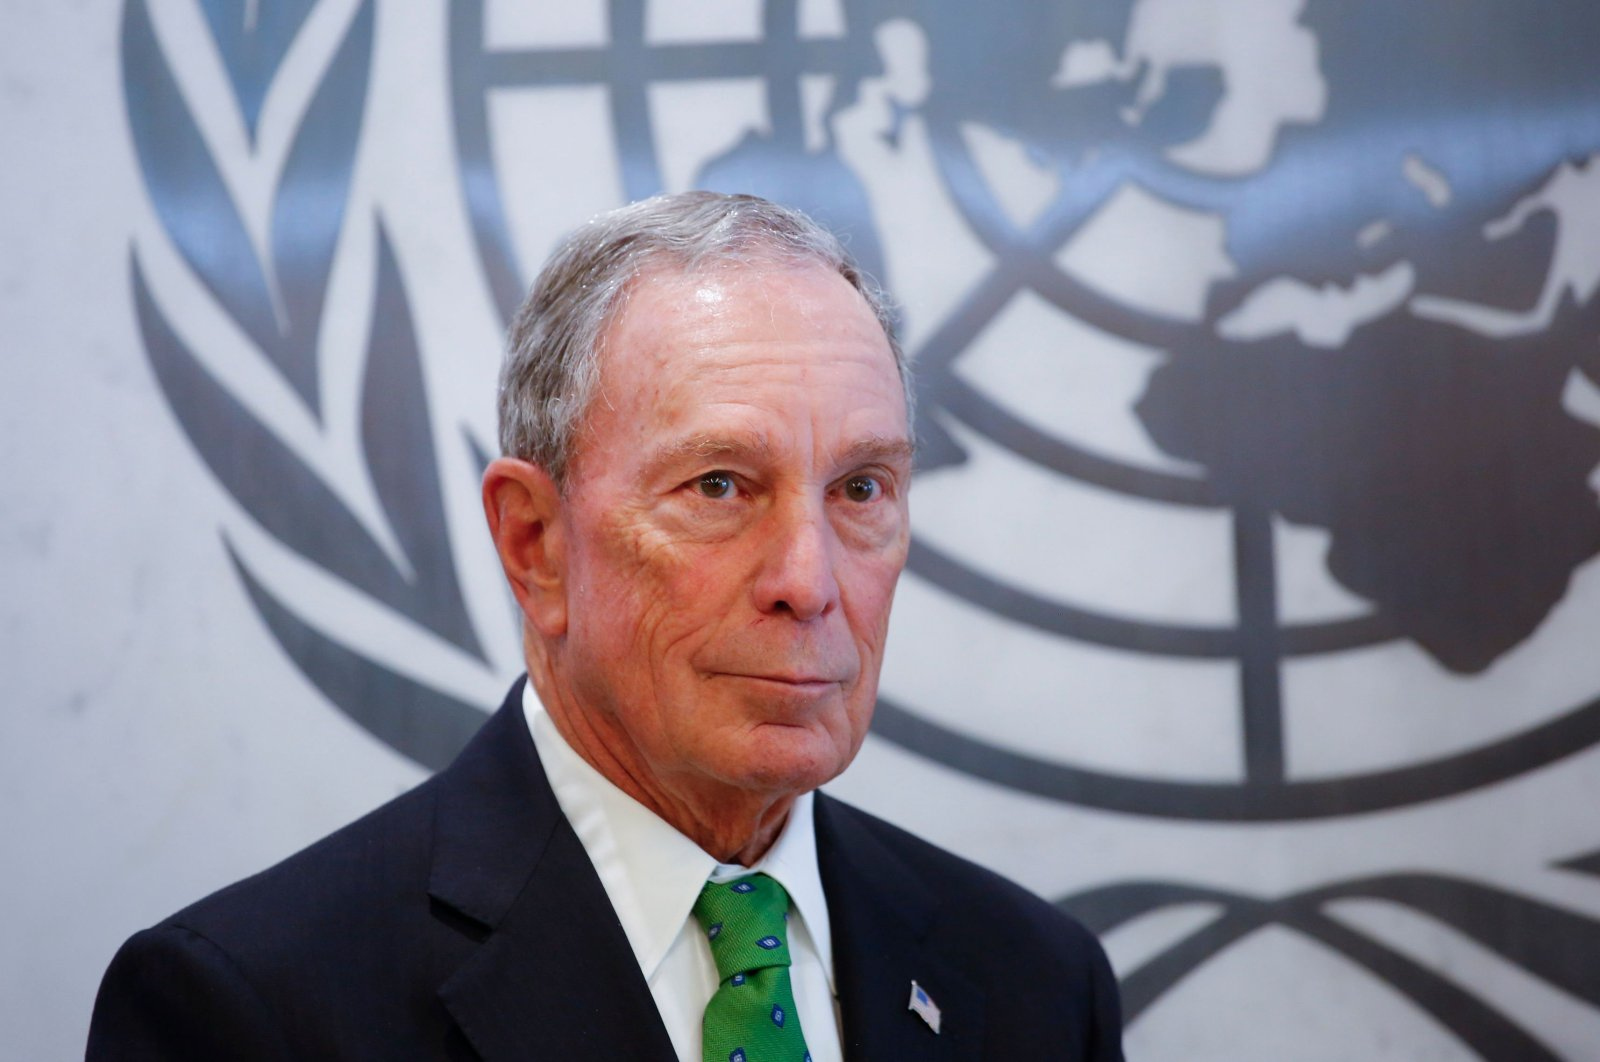 Michael Bloomberg poses after he was appointed Special Envoy for Climate Action by United Nations Secretary-General Antonio Guterres at the U.N. headquarters in New York City, March 05, 2018. (AFP Photo)